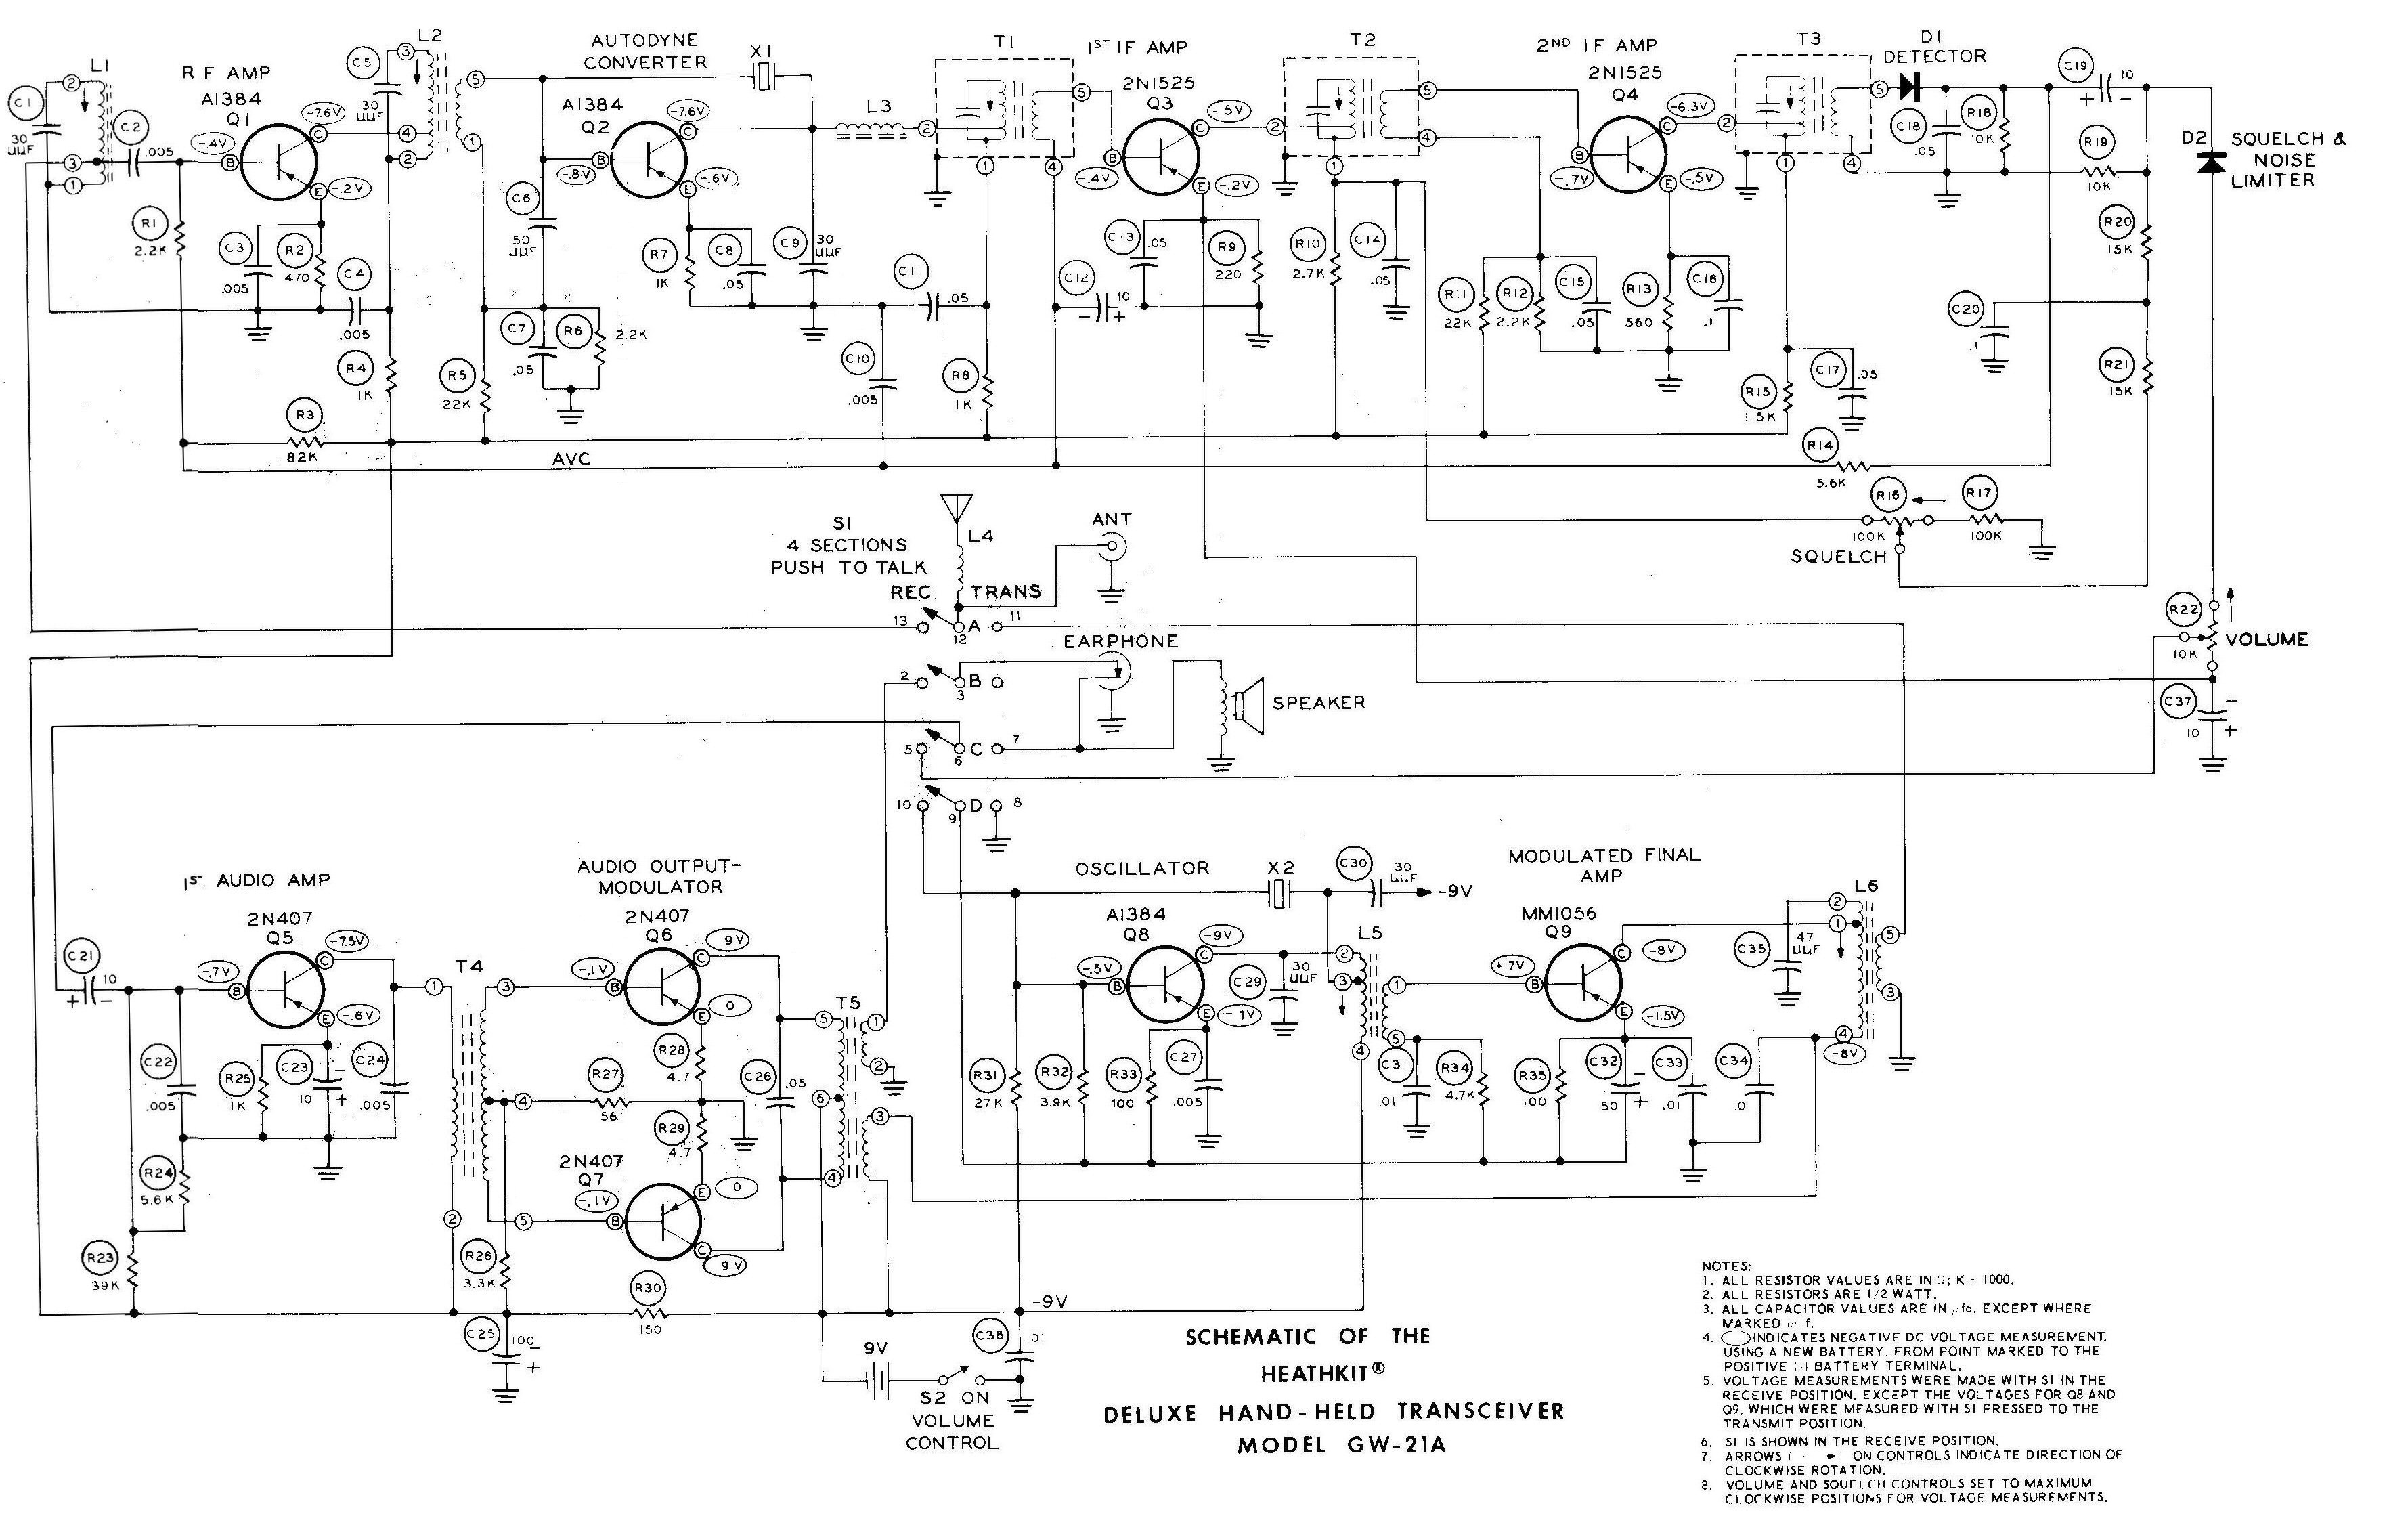 Amateur Radio Links on ham radio radio, ham radio antenna, ham radio brochure, ham radio help, ham radio cable, ham radio guide, ham radio circuit diagram, ham radio parts catalog, ham radio block diagram, ham radio parts diagram, ham radio plug, ham radio lights, ham radio switch, ham radio speakers, ham radio manual, ham radio system, ham radio cover, ham radio timer, ham radio equipment diagram, ham radio relay,